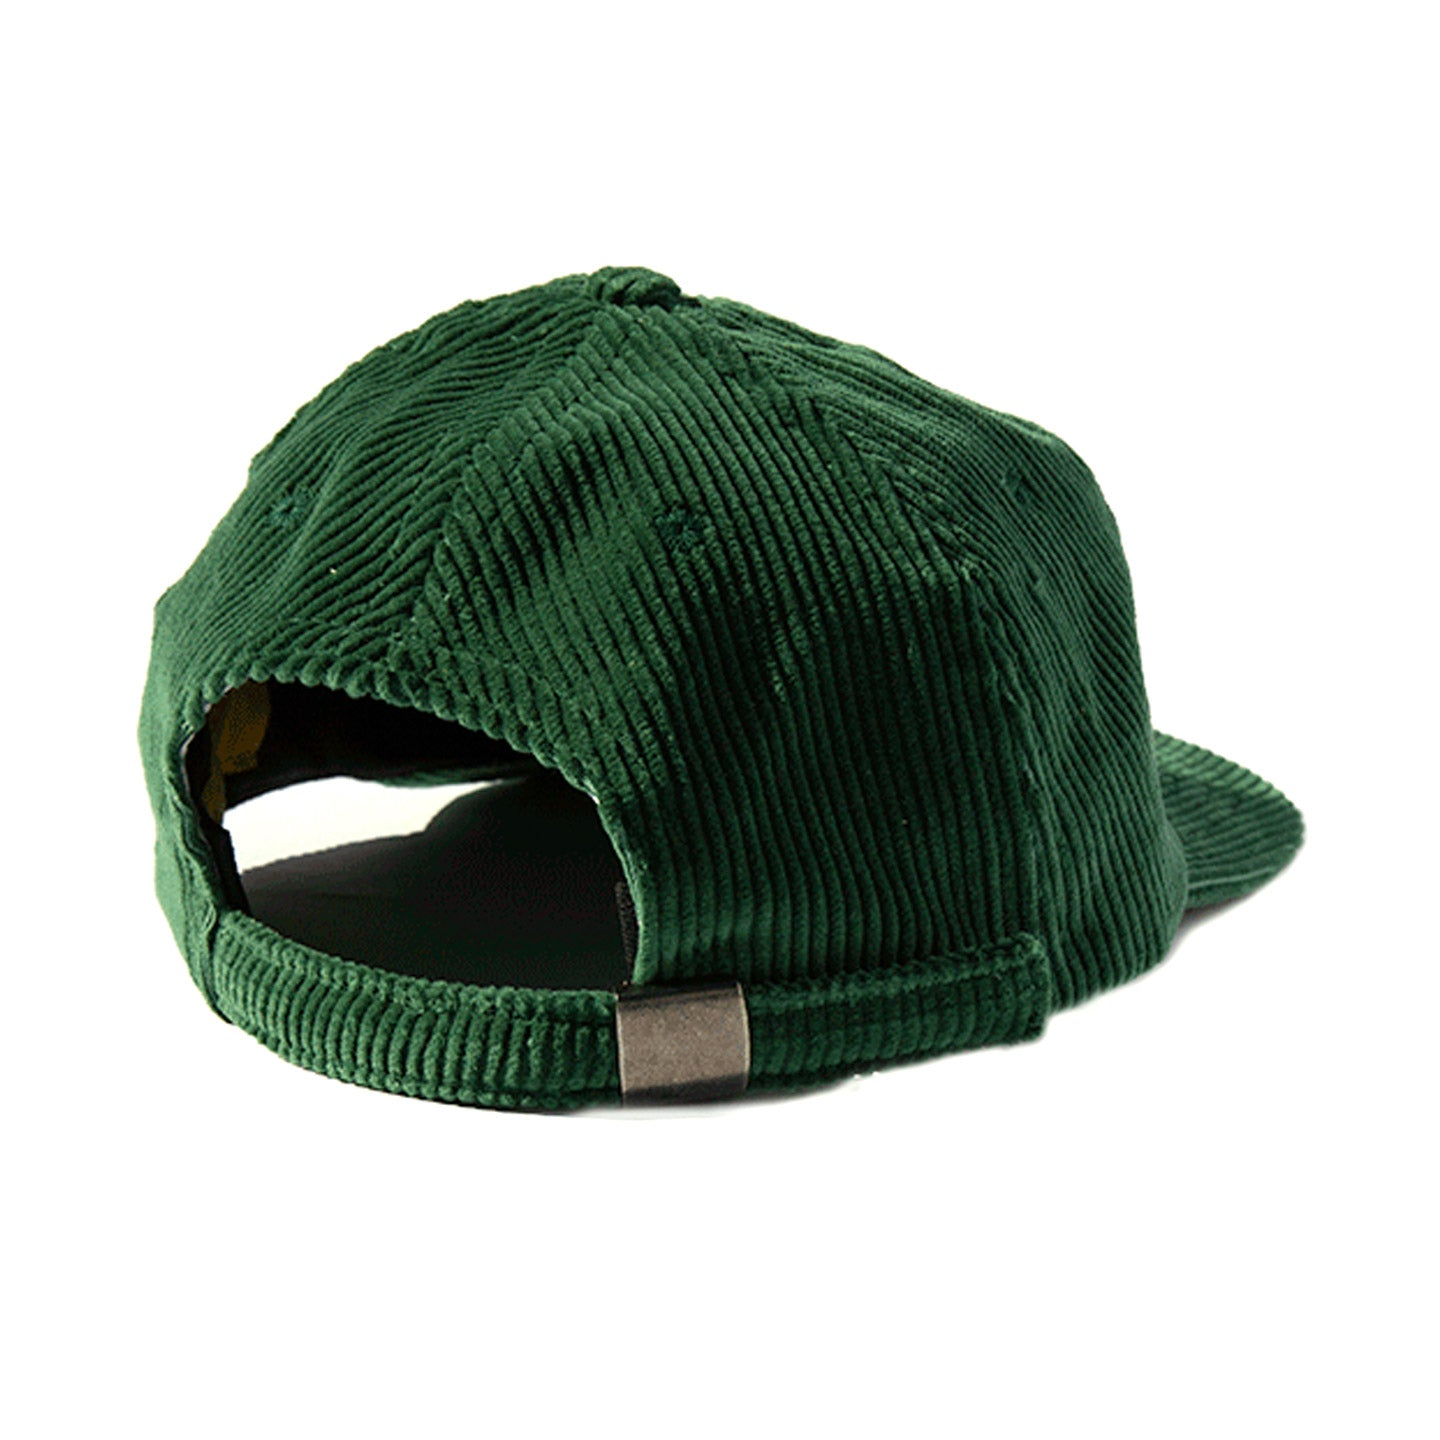 LITE YEAR SIX PANEL CAP GREEN CORDUROY